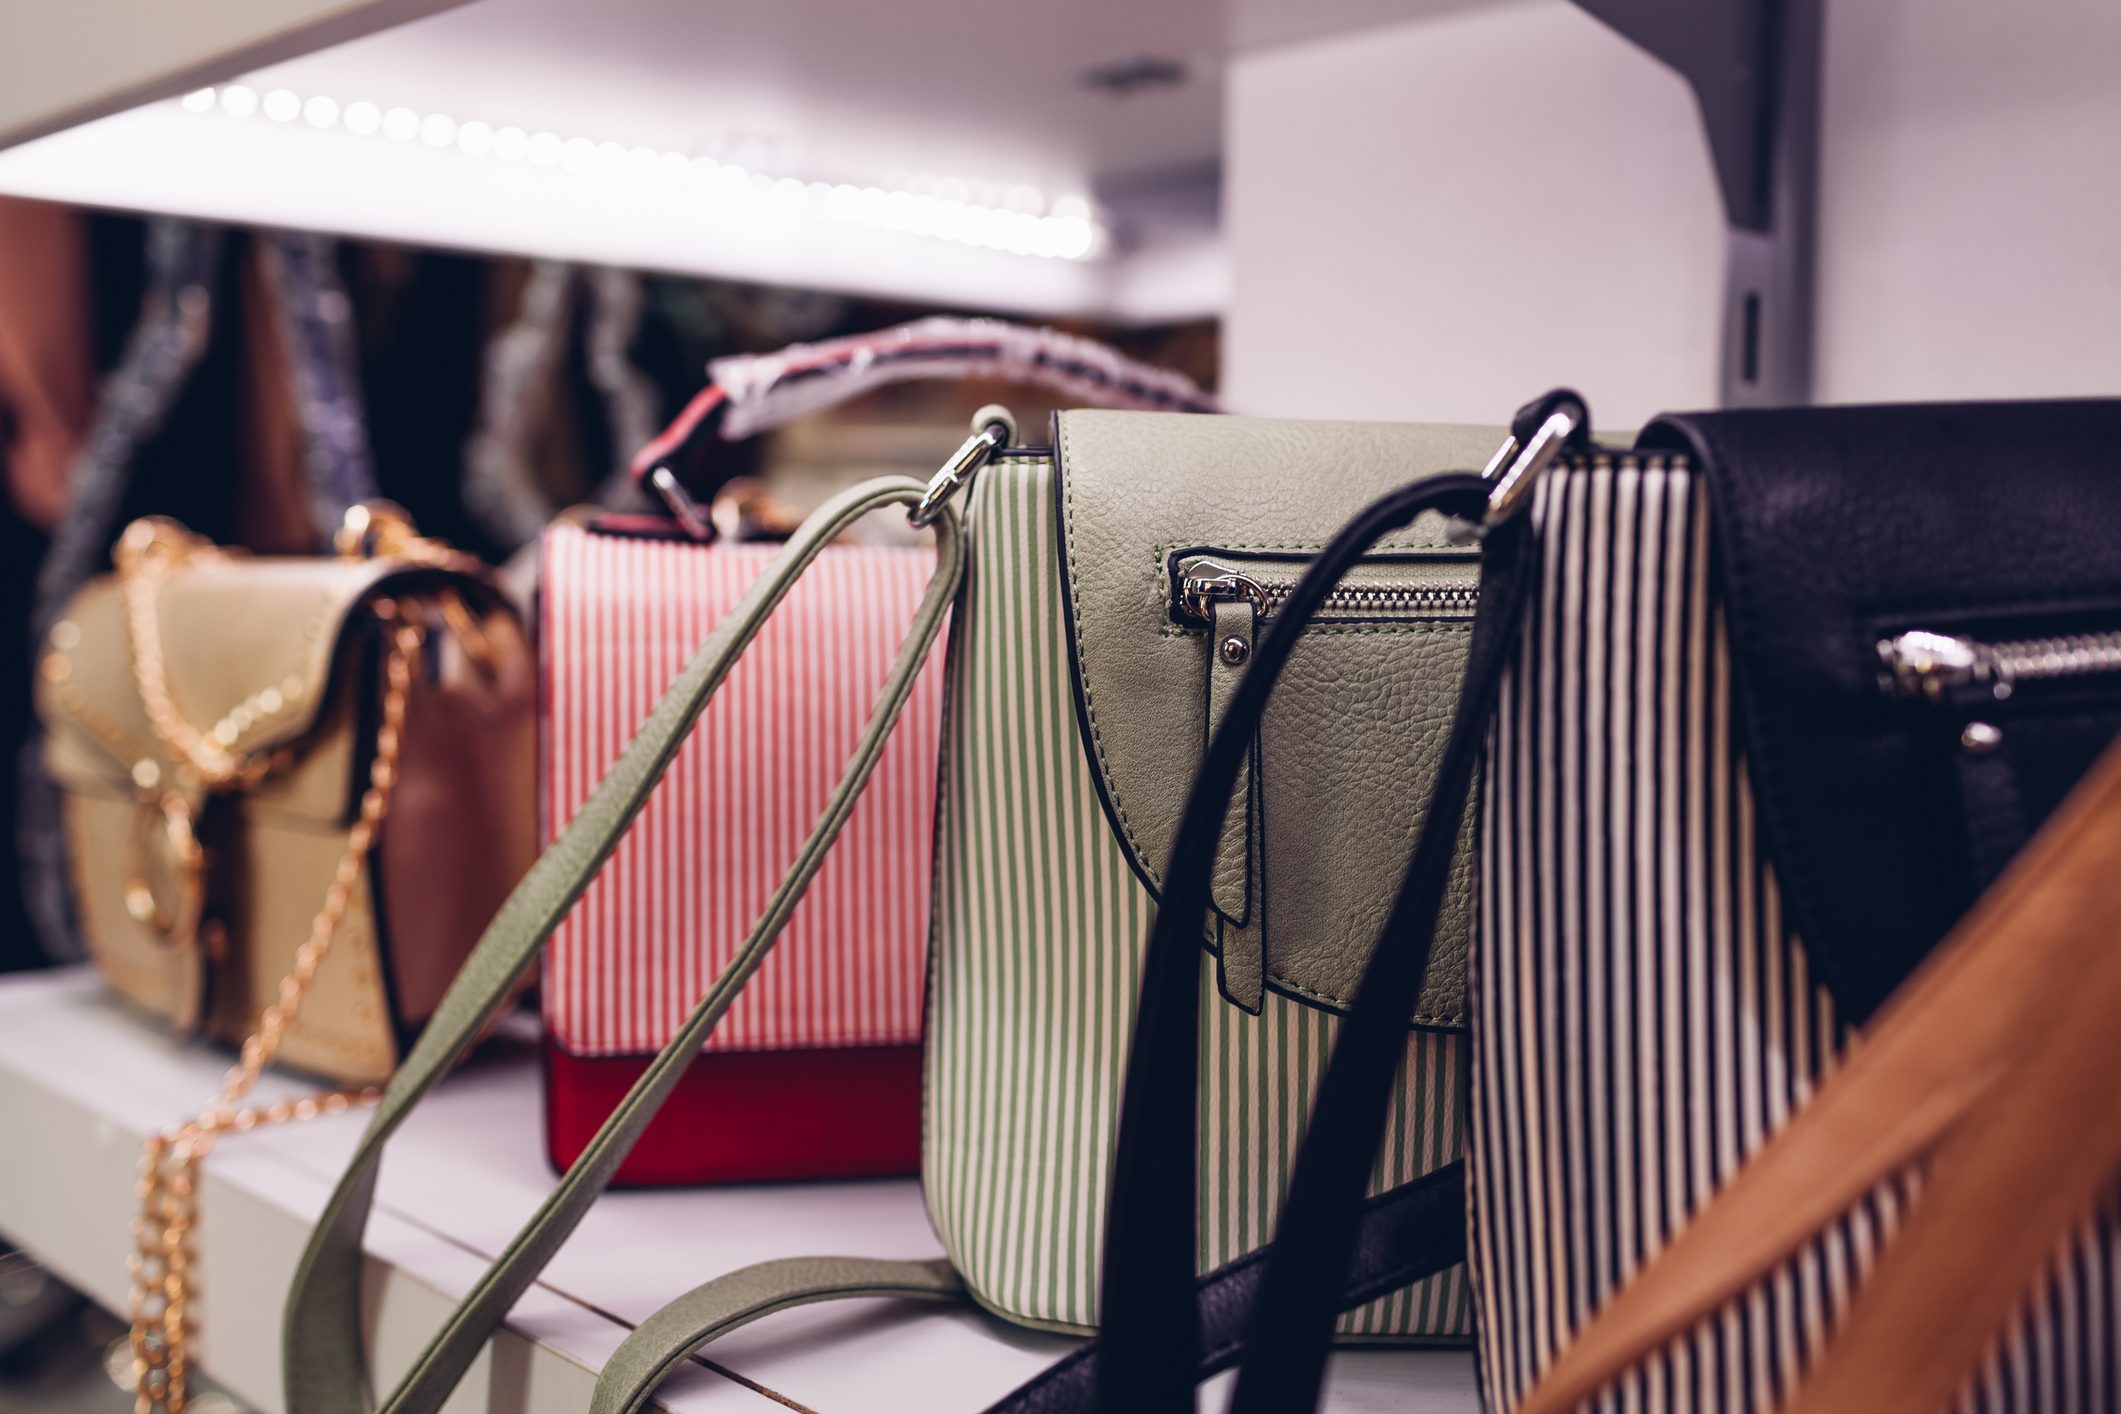 purses-lined-up